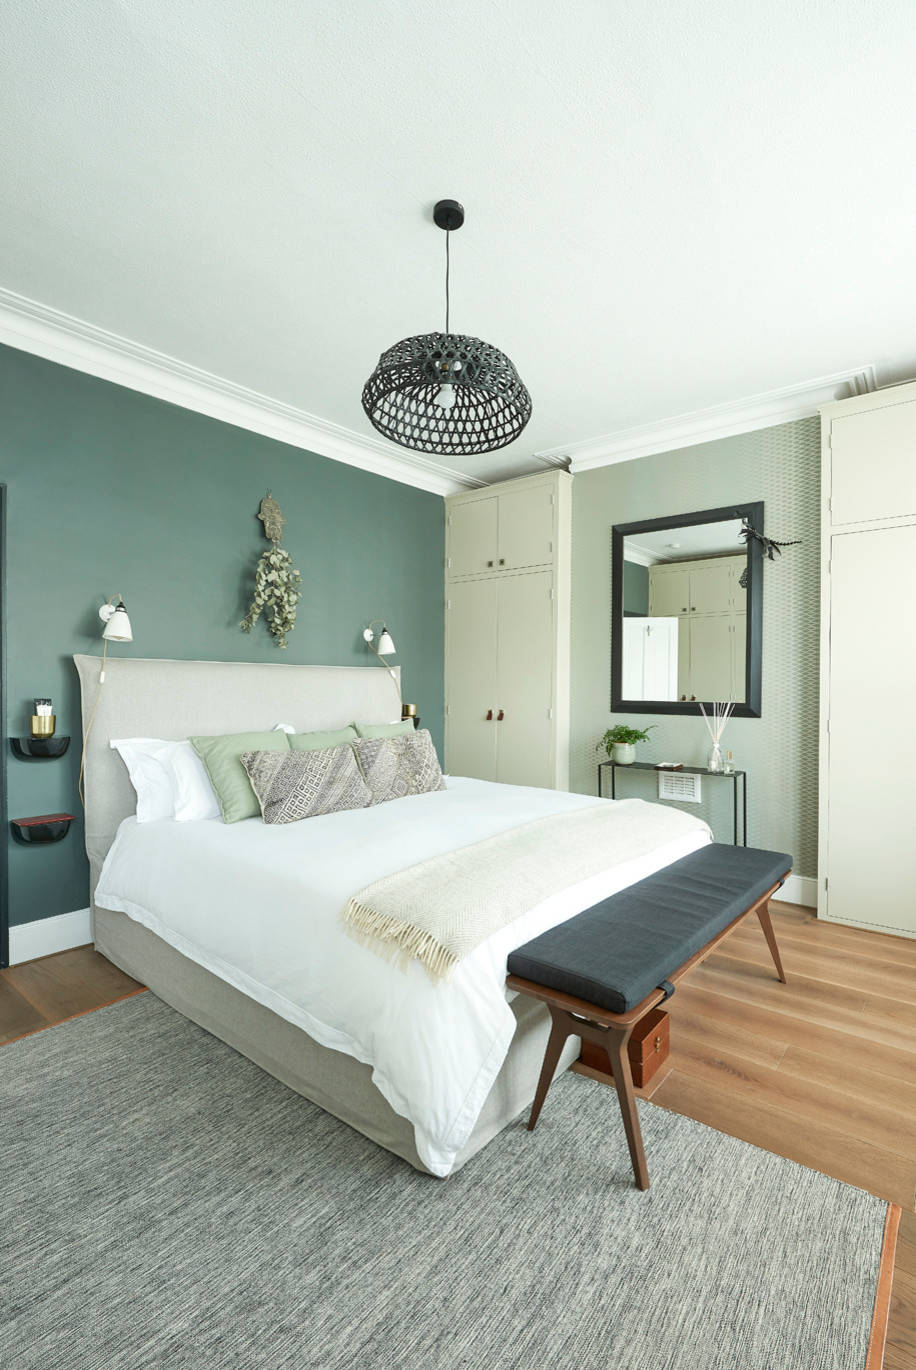 75 Beautiful Green Bedroom Pictures Ideas March 2021 Houzz